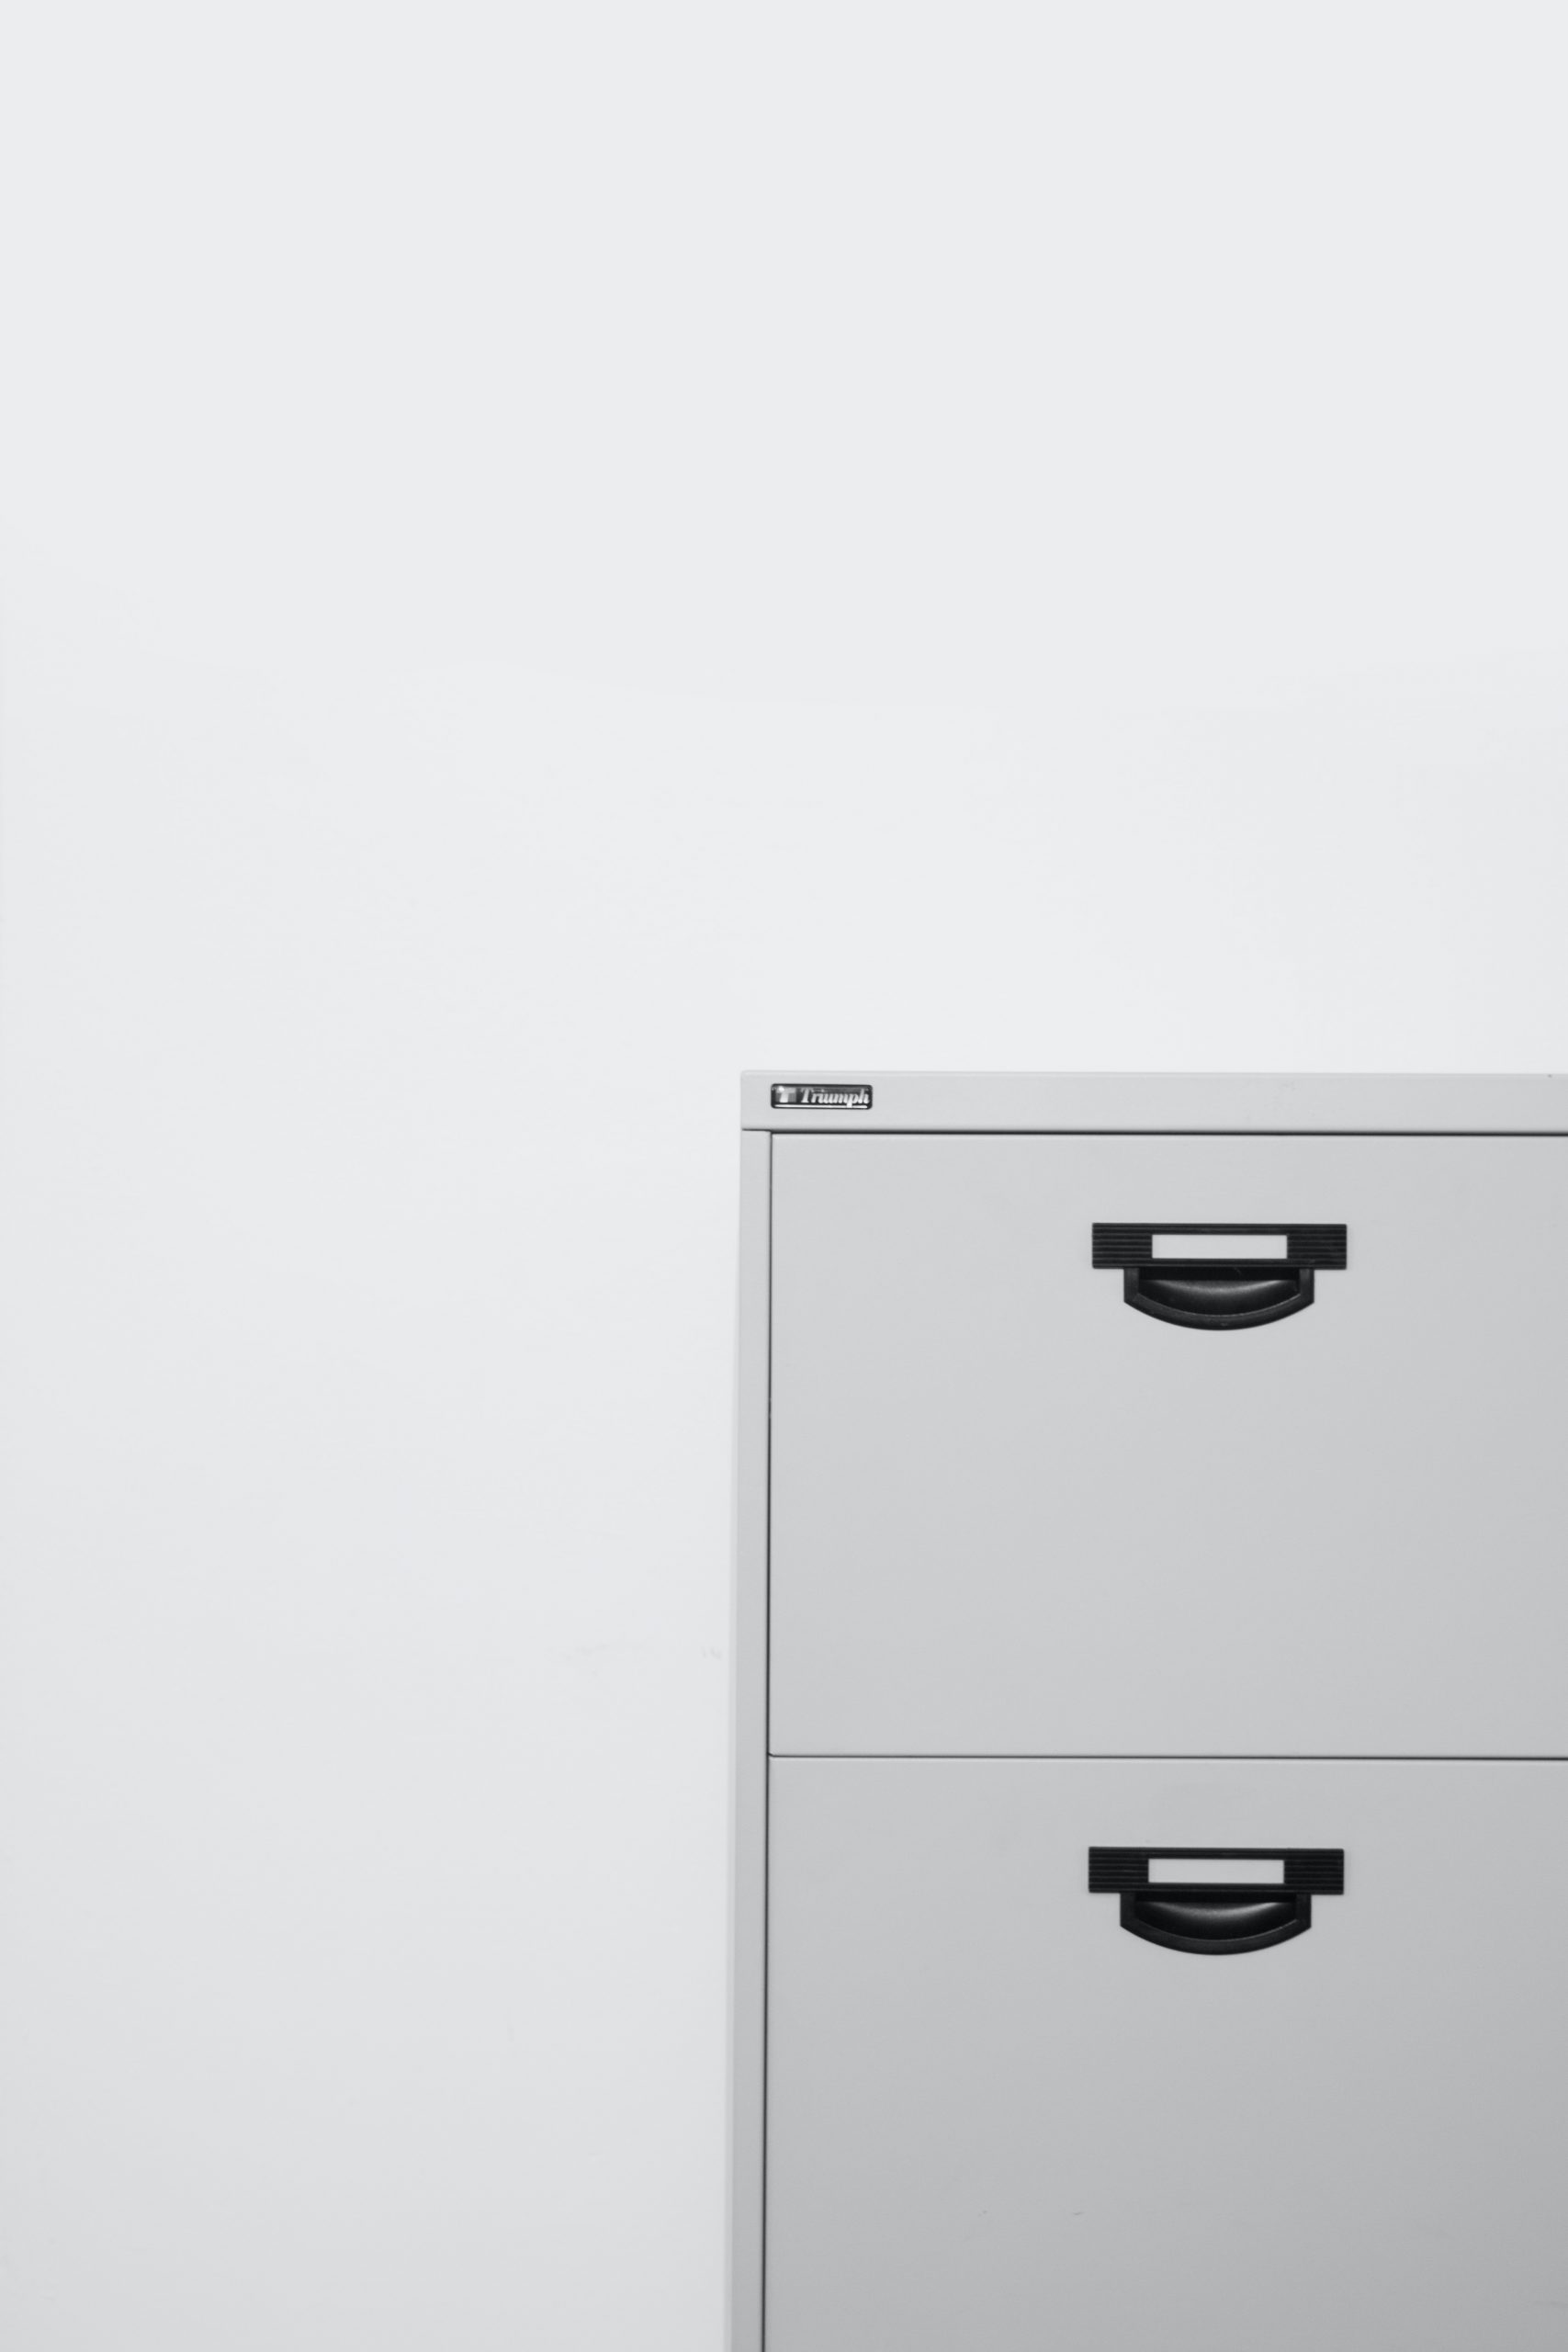 gray metal locker on white surface